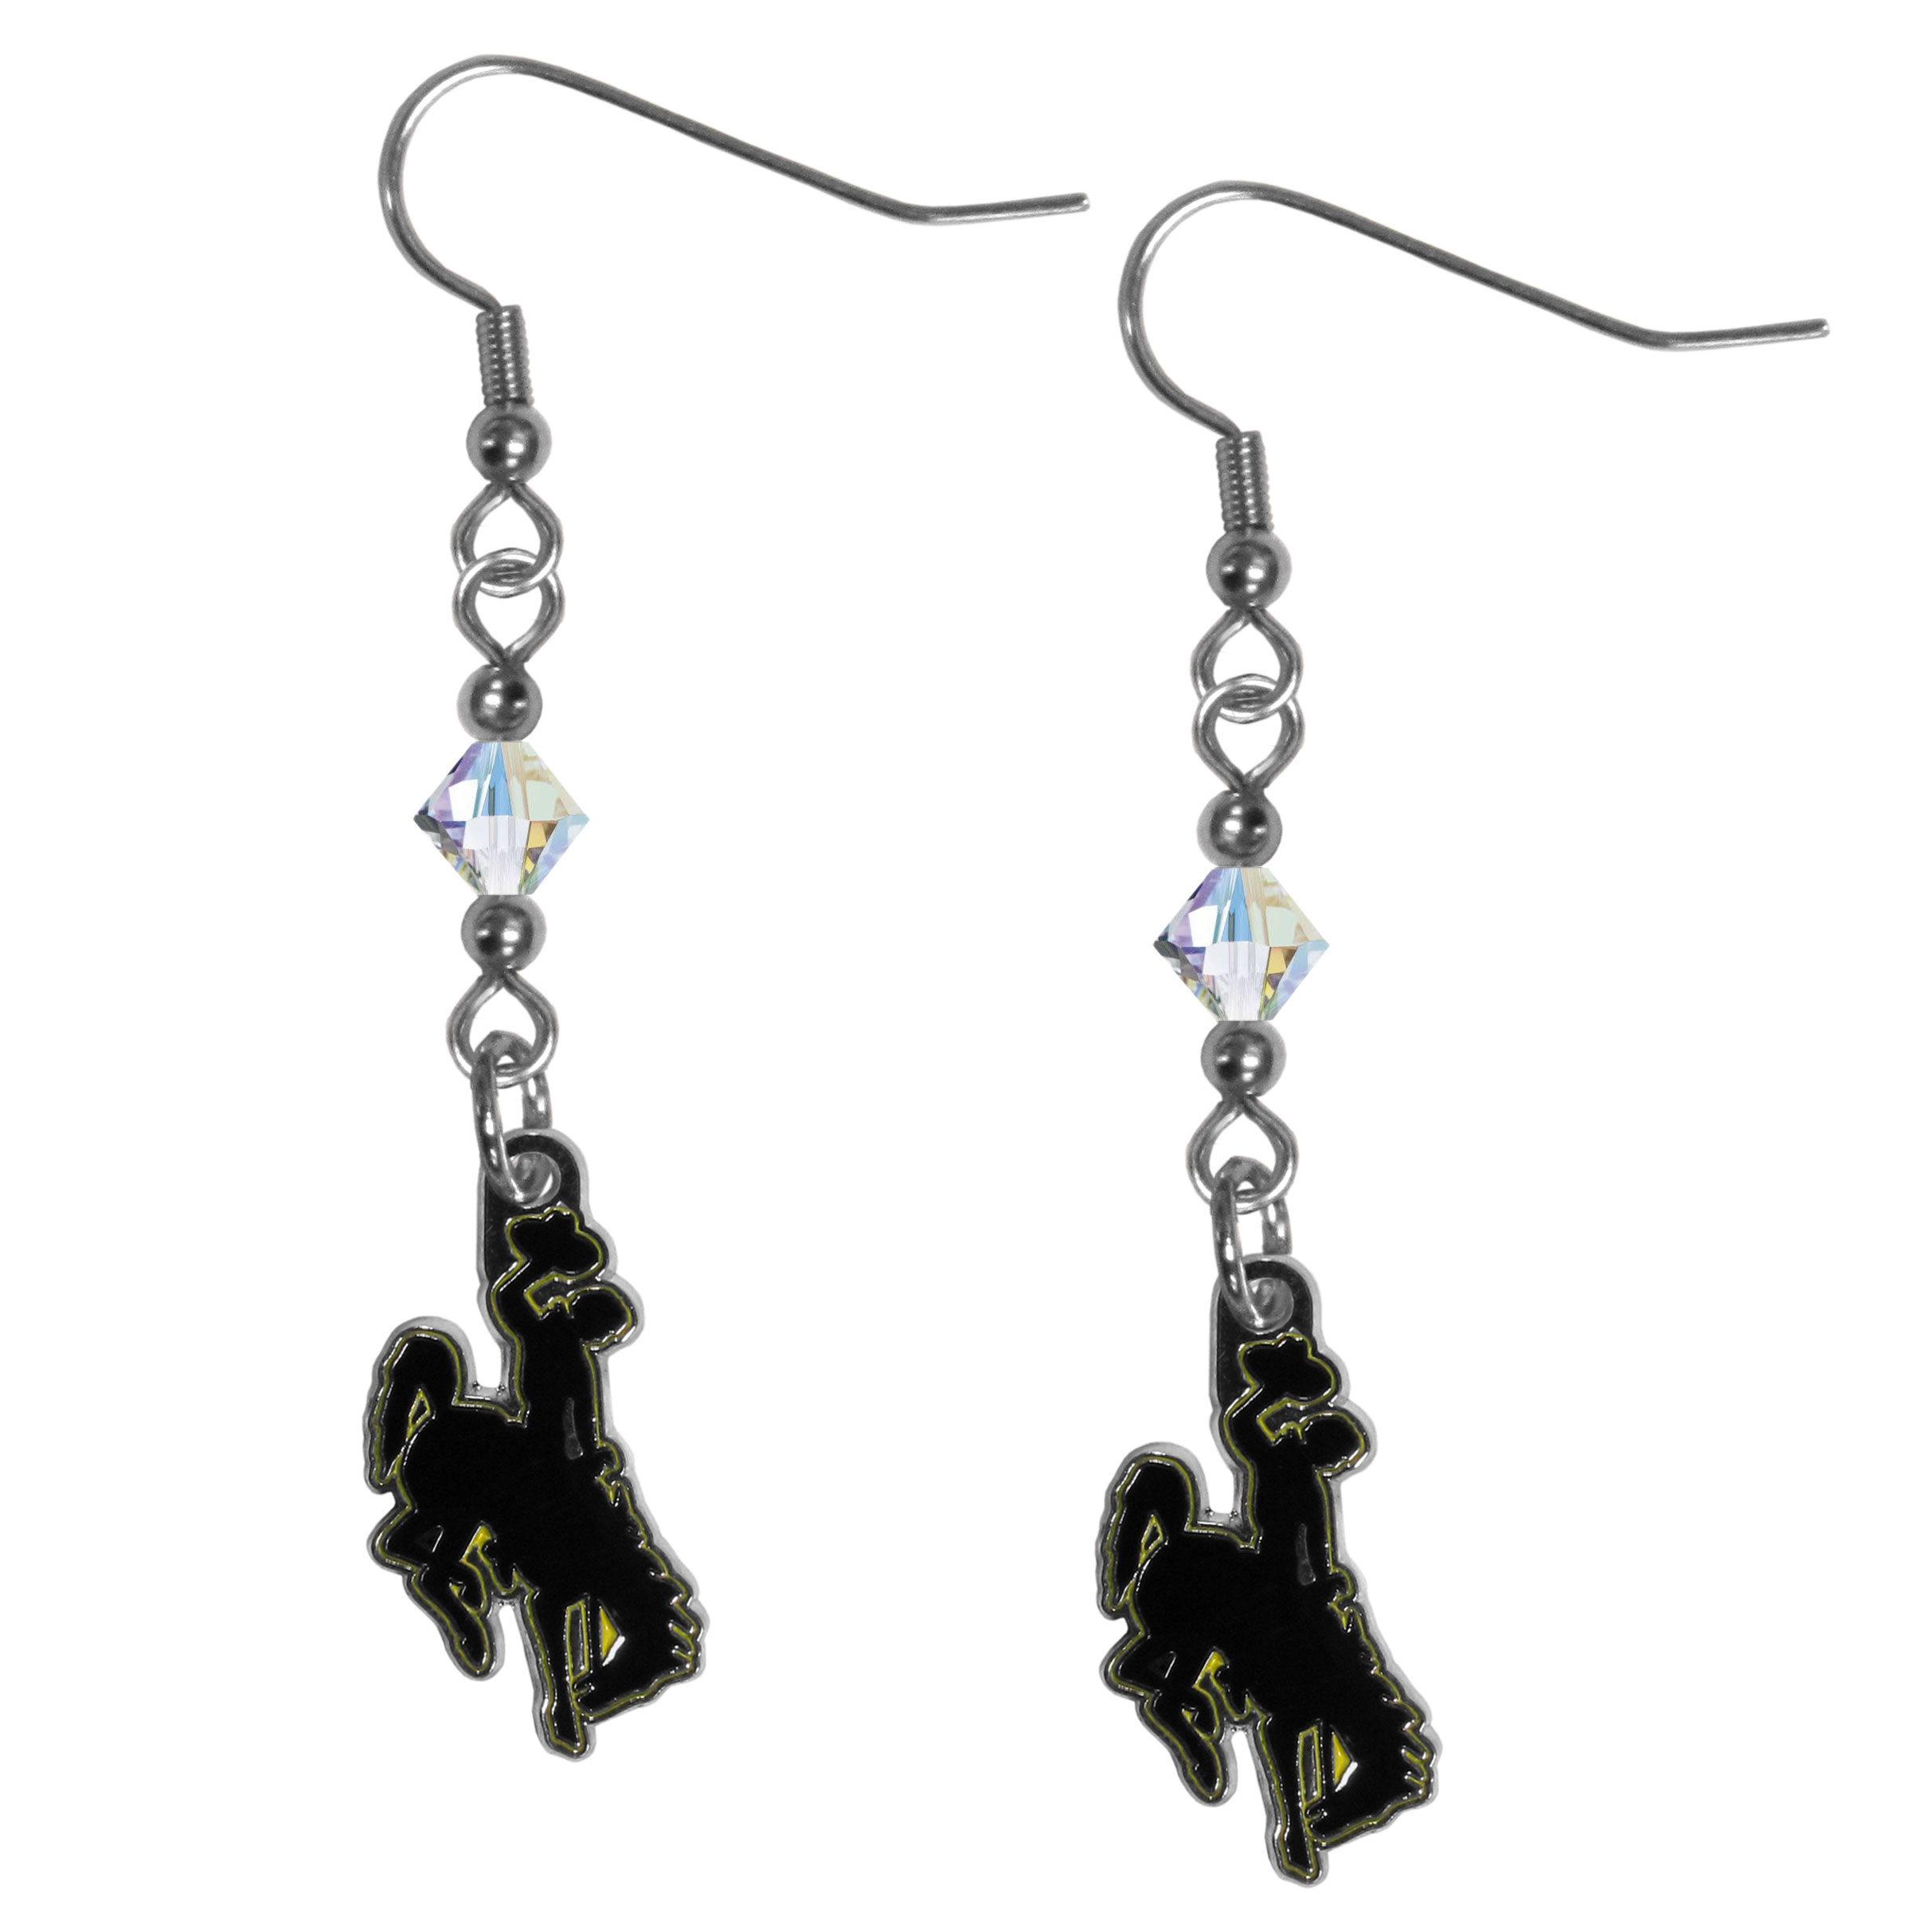 Wyoming Cowboys Crystal Dangle Earrings - Our crystal dangle earrings are the perfect accessory for your game day outfit! The earrings are approximately 1.5 inches long and feature an iridescent crystal bead and nickel free chrome Wyoming Cowboy charm on nickel free, hypoallergenic fishhook posts.